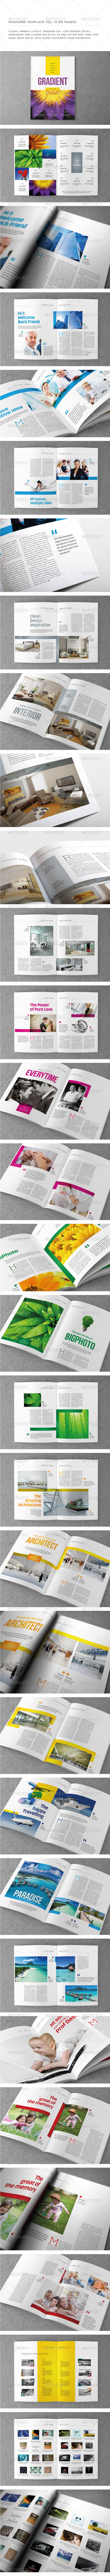 A4/Letter 50 Pages mgz (Vol. 13) - Magazines Print Templates